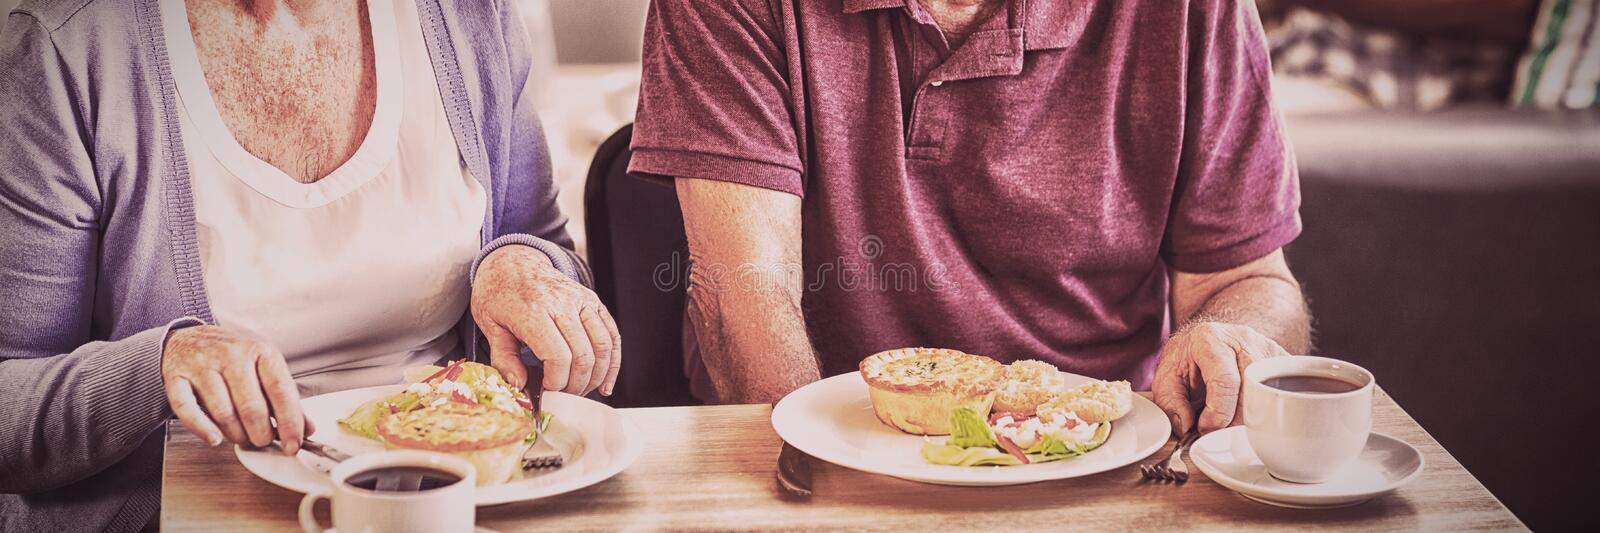 Senior couple having lunch together stock image